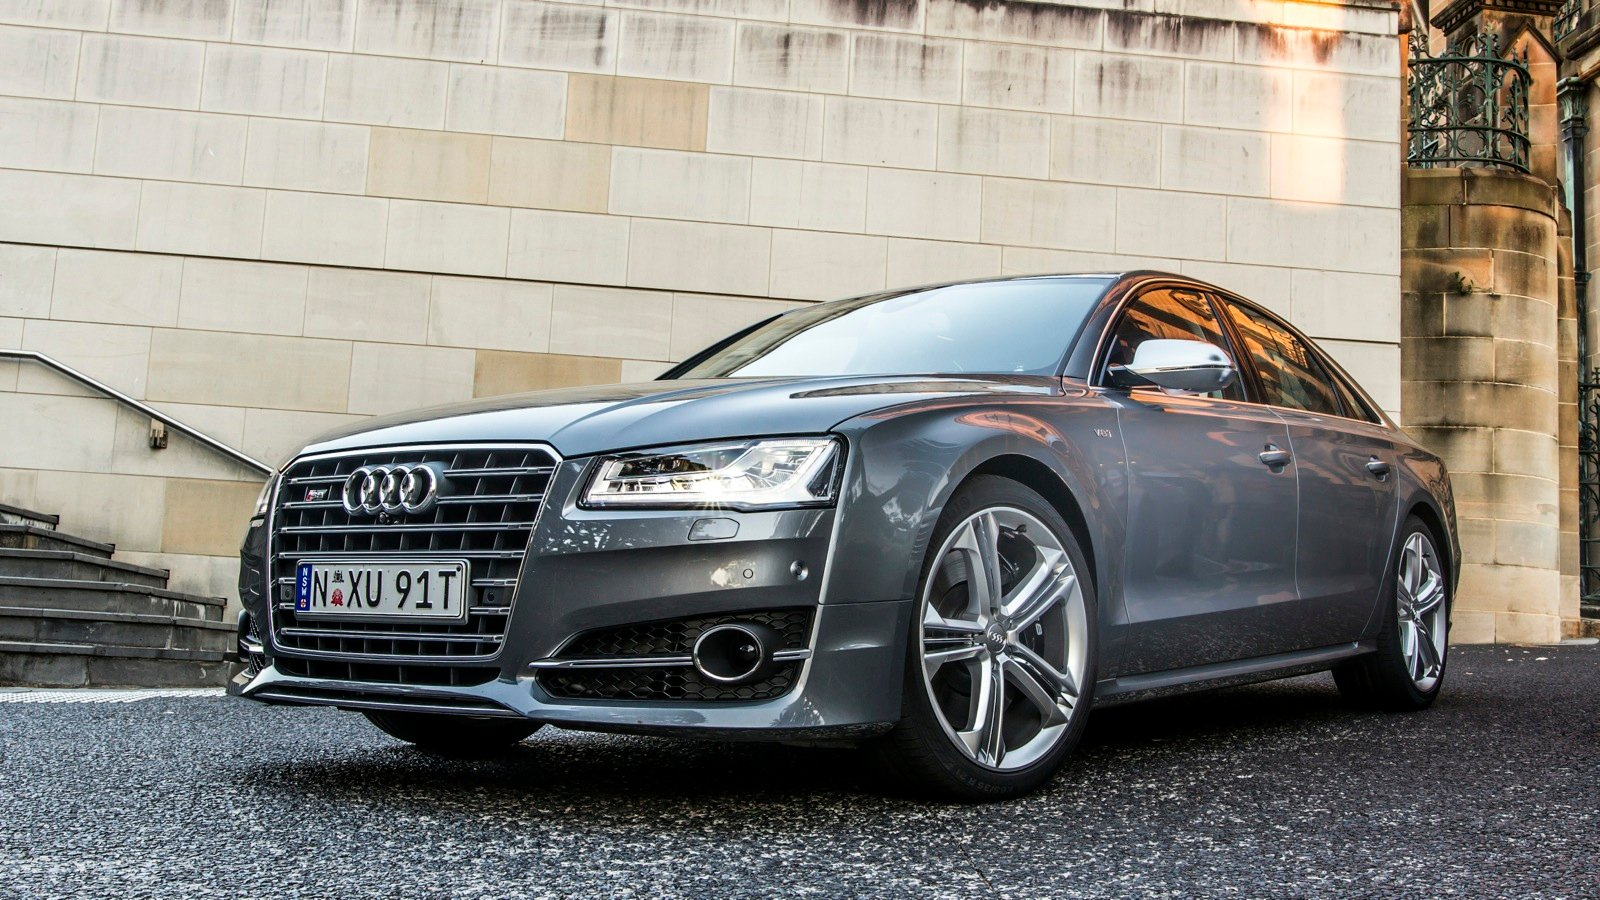 Audi s8 v mercedes benz s63 amg comparison review for Mercedes benz s63 amg price